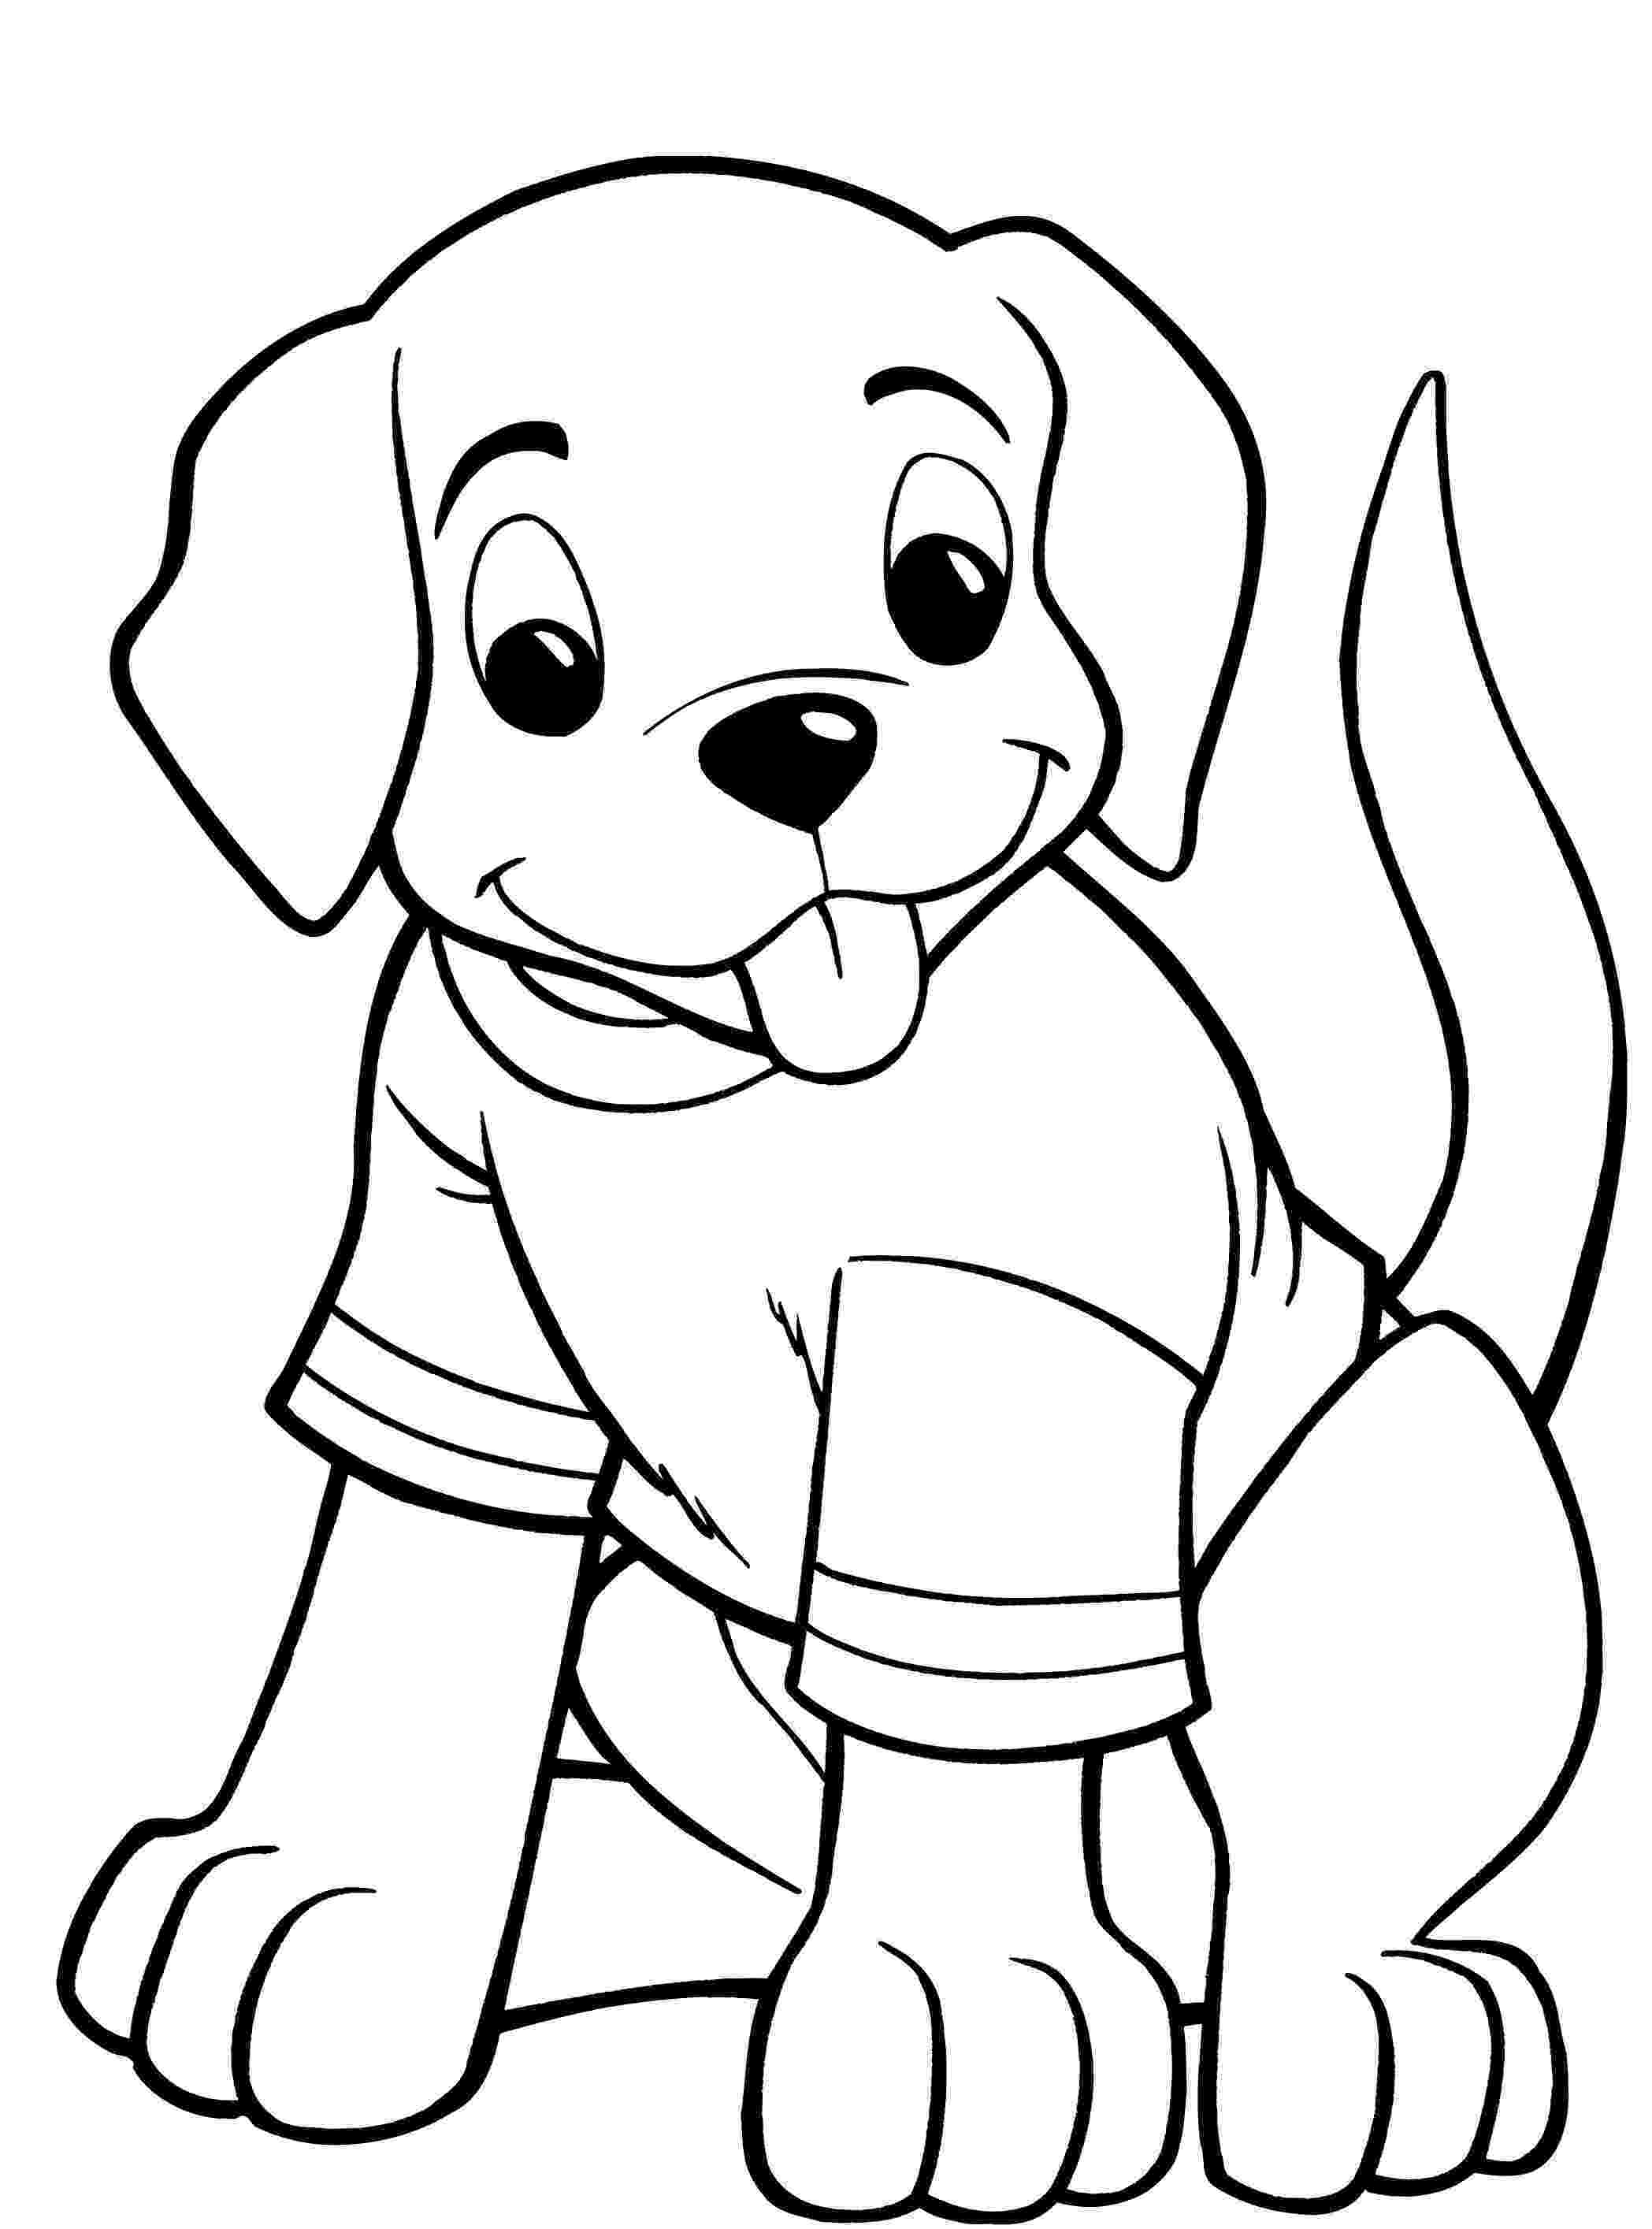 coloring page of dog free printable dog coloring pages for kids page coloring dog of